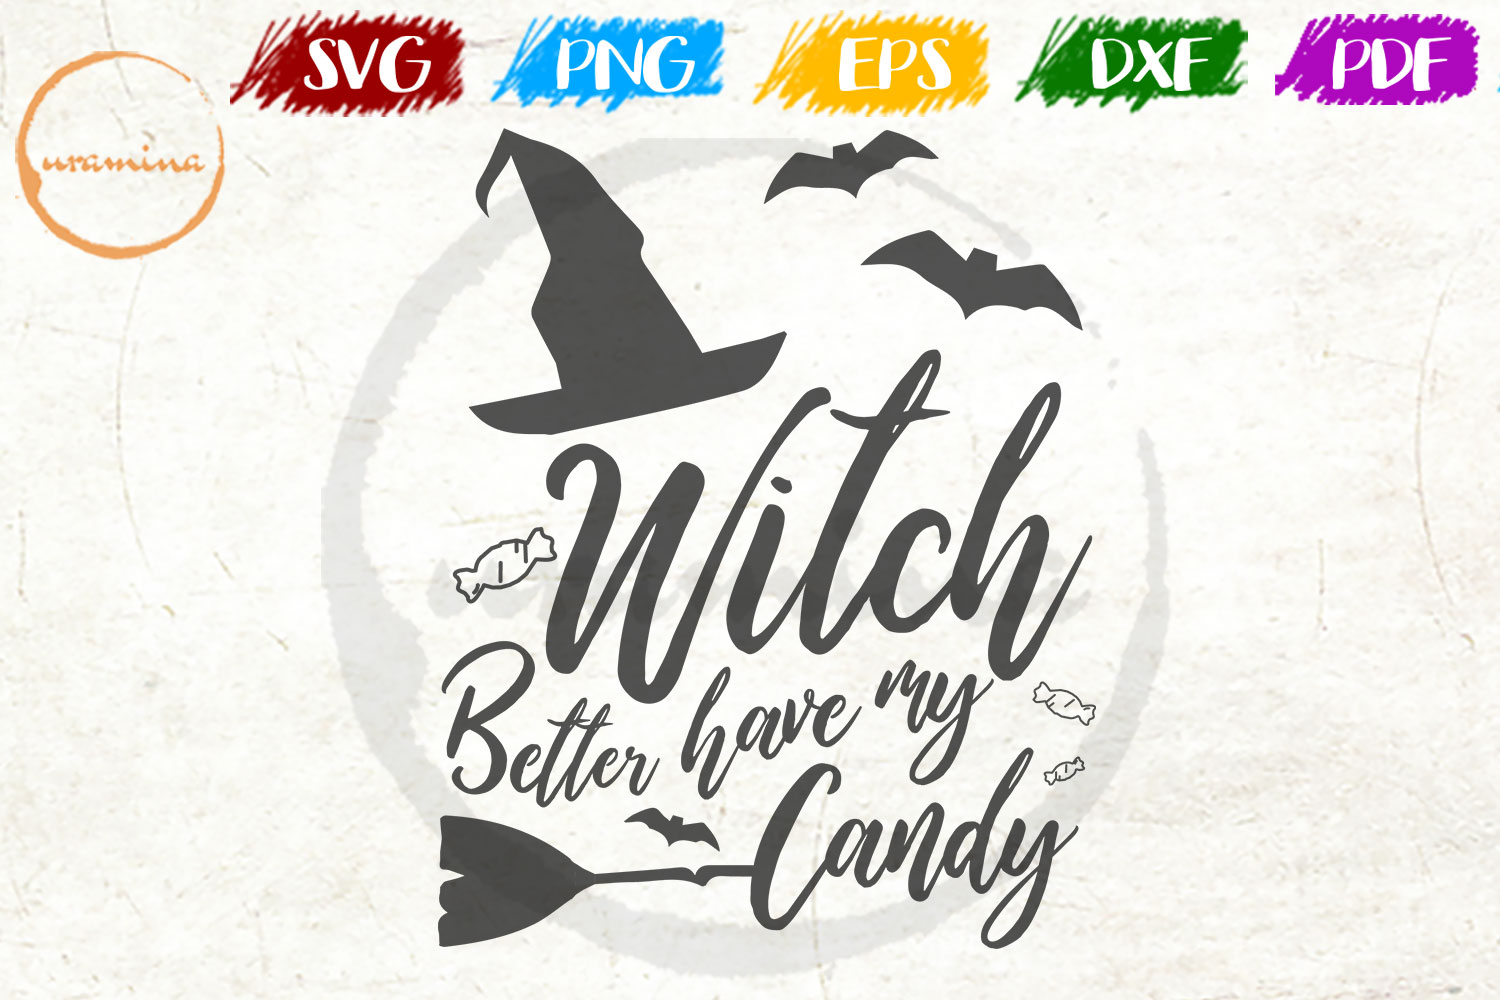 Download Free Witch Better Have My Candy Graphic By Uramina Creative Fabrica for Cricut Explore, Silhouette and other cutting machines.